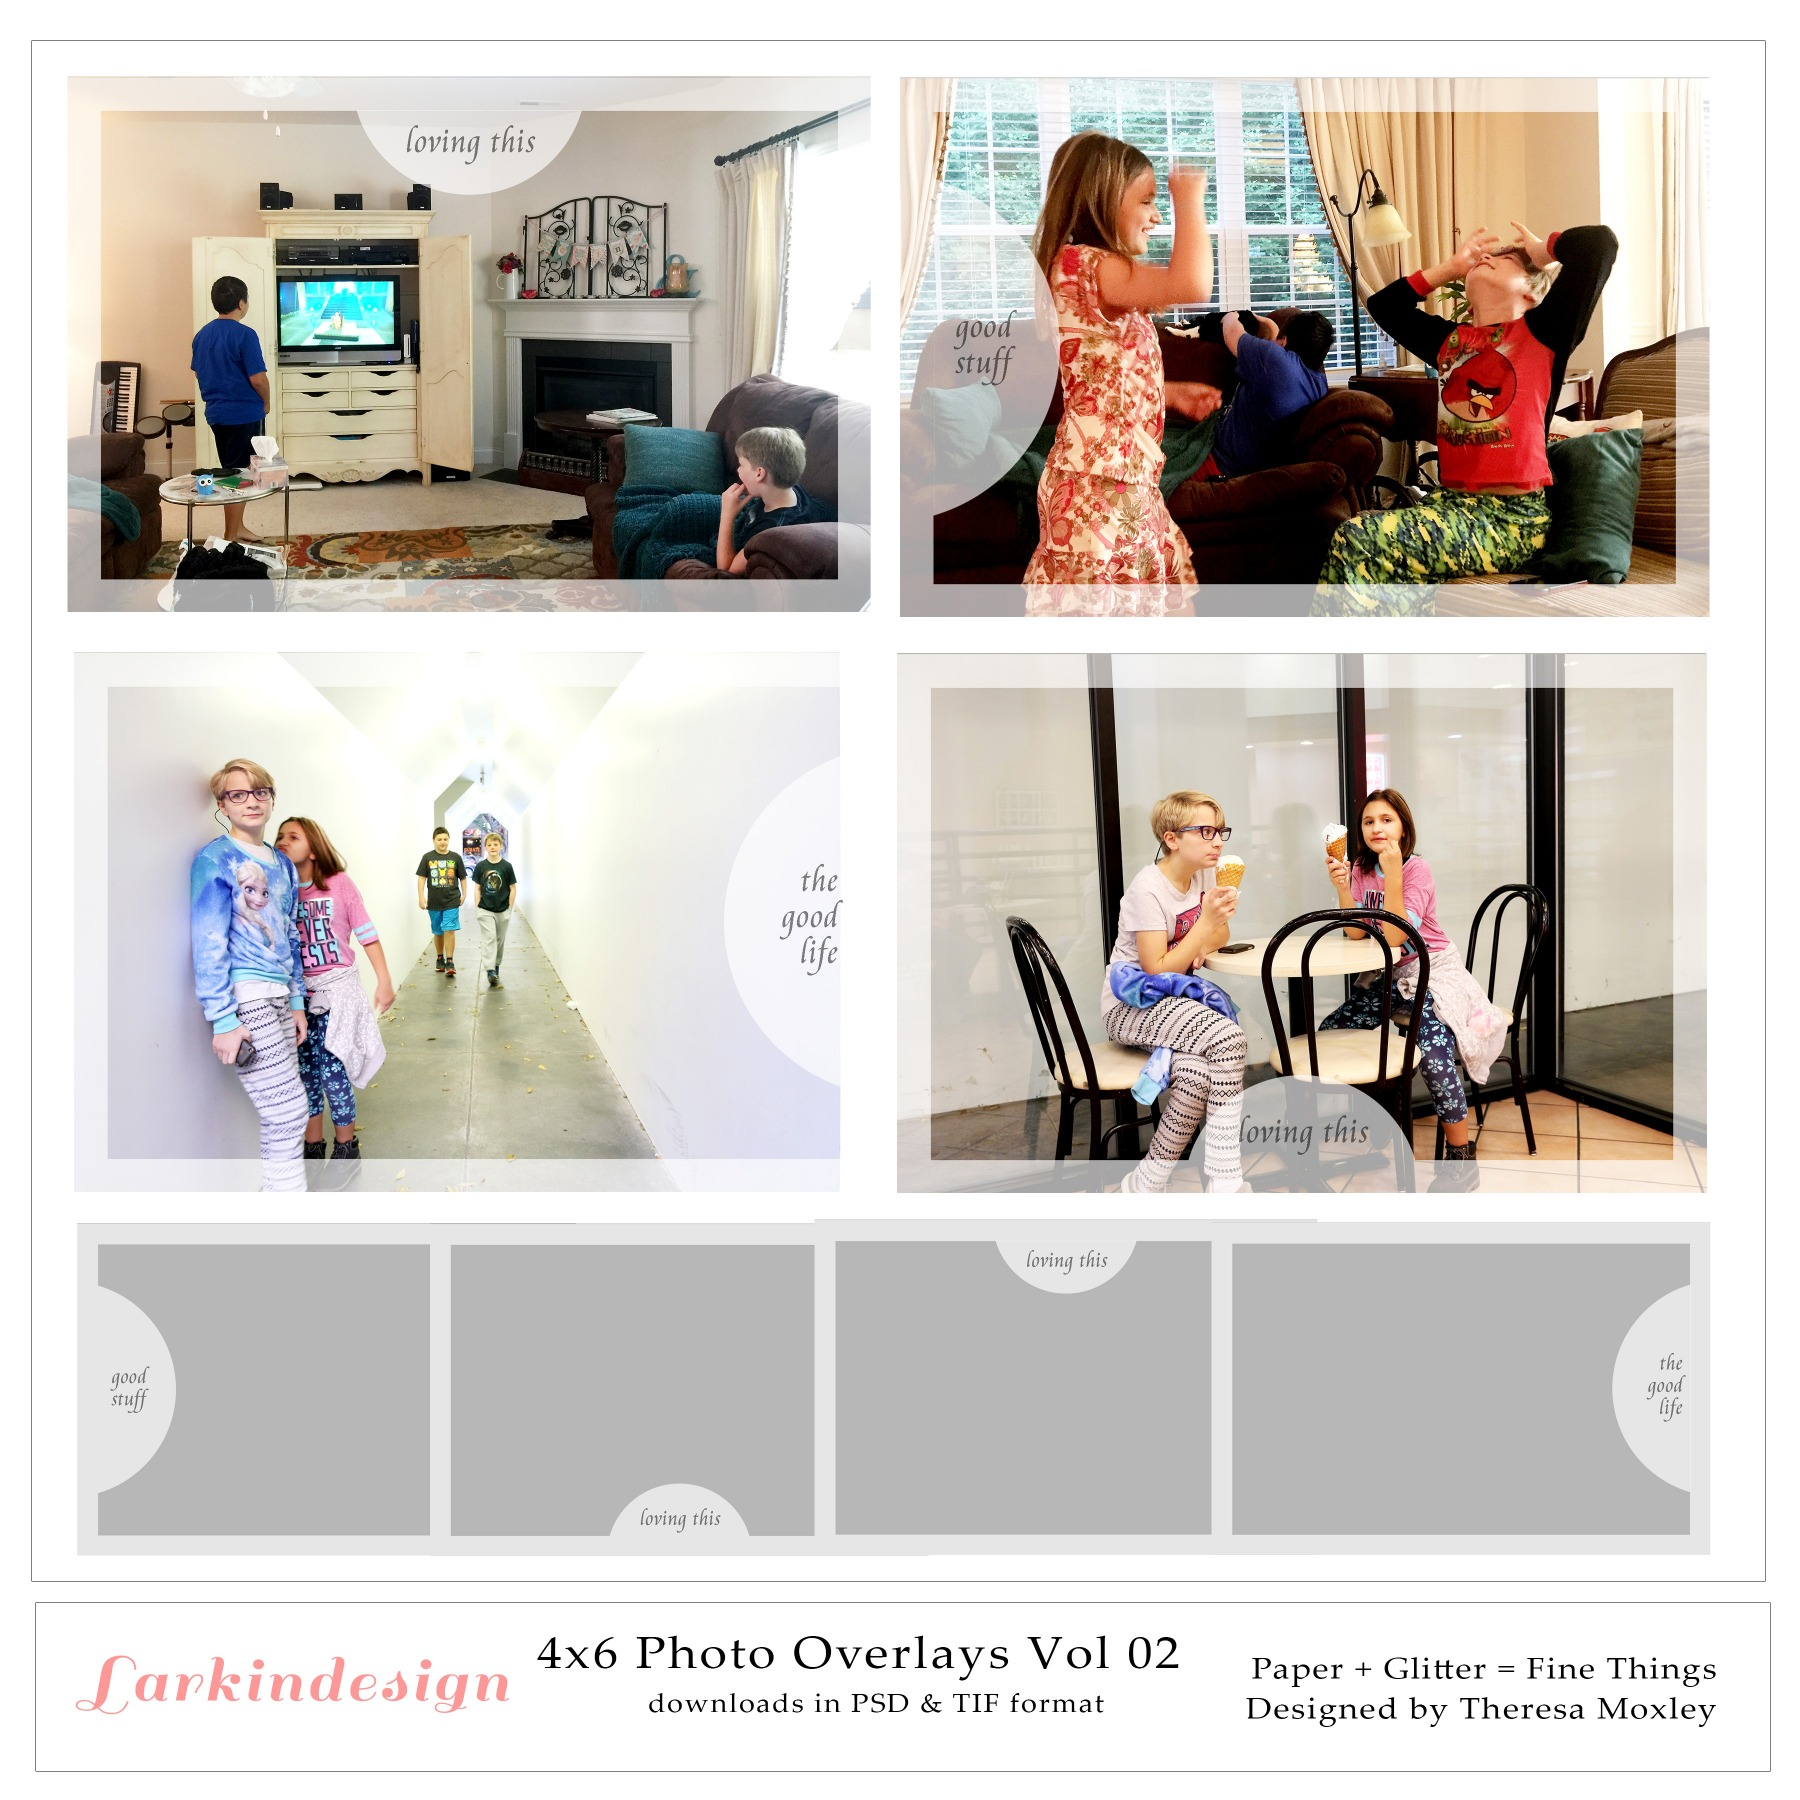 12x12 4x6 Photo Overlays Vol 02 Preview IMG